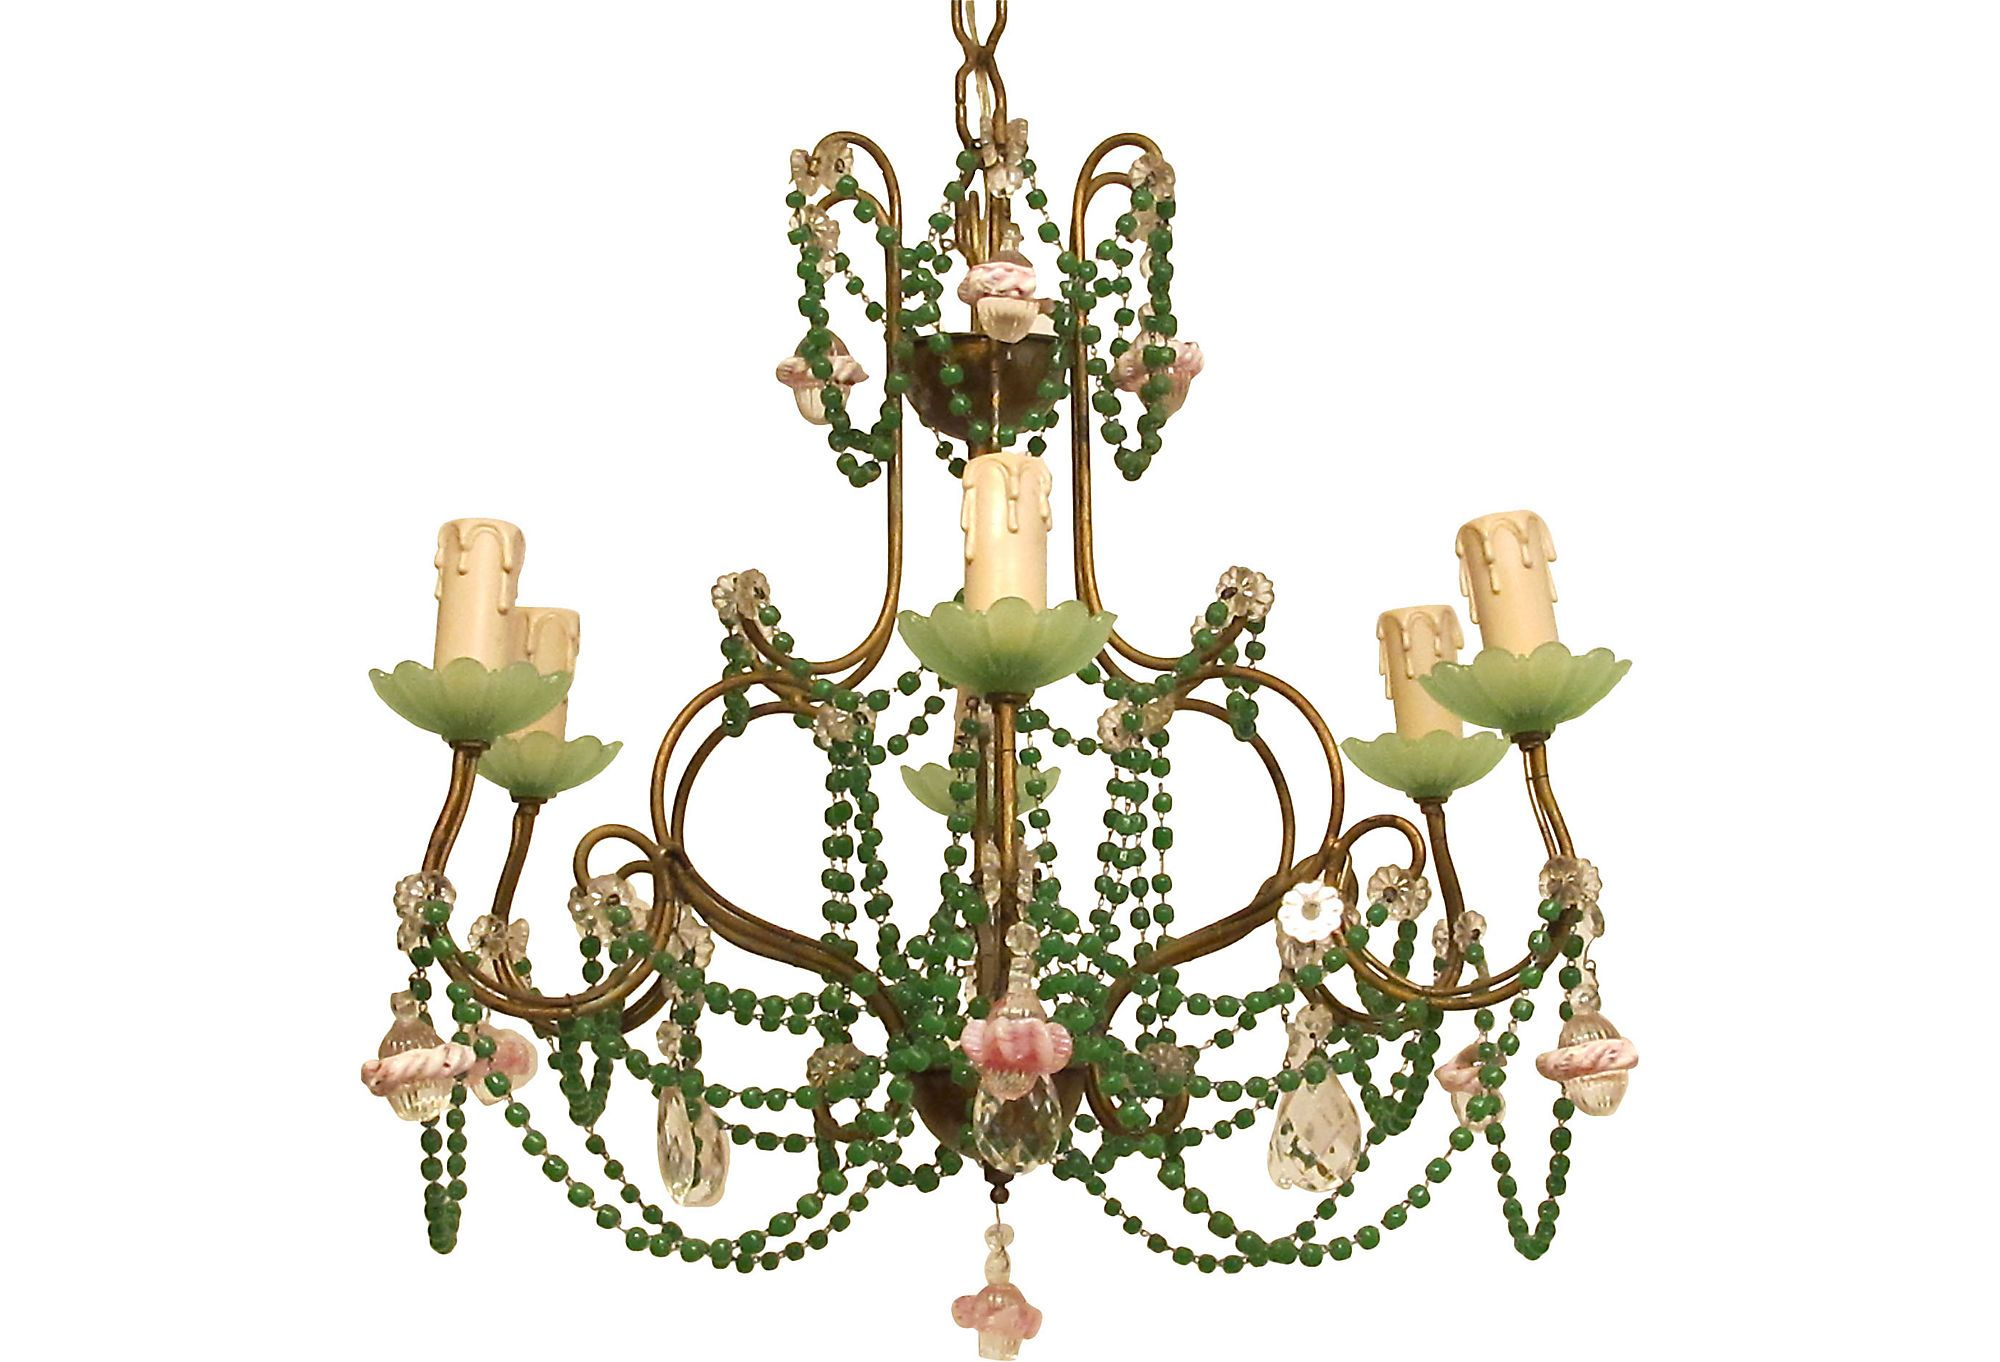 chandelier luna products collections chandeliers green lovegood